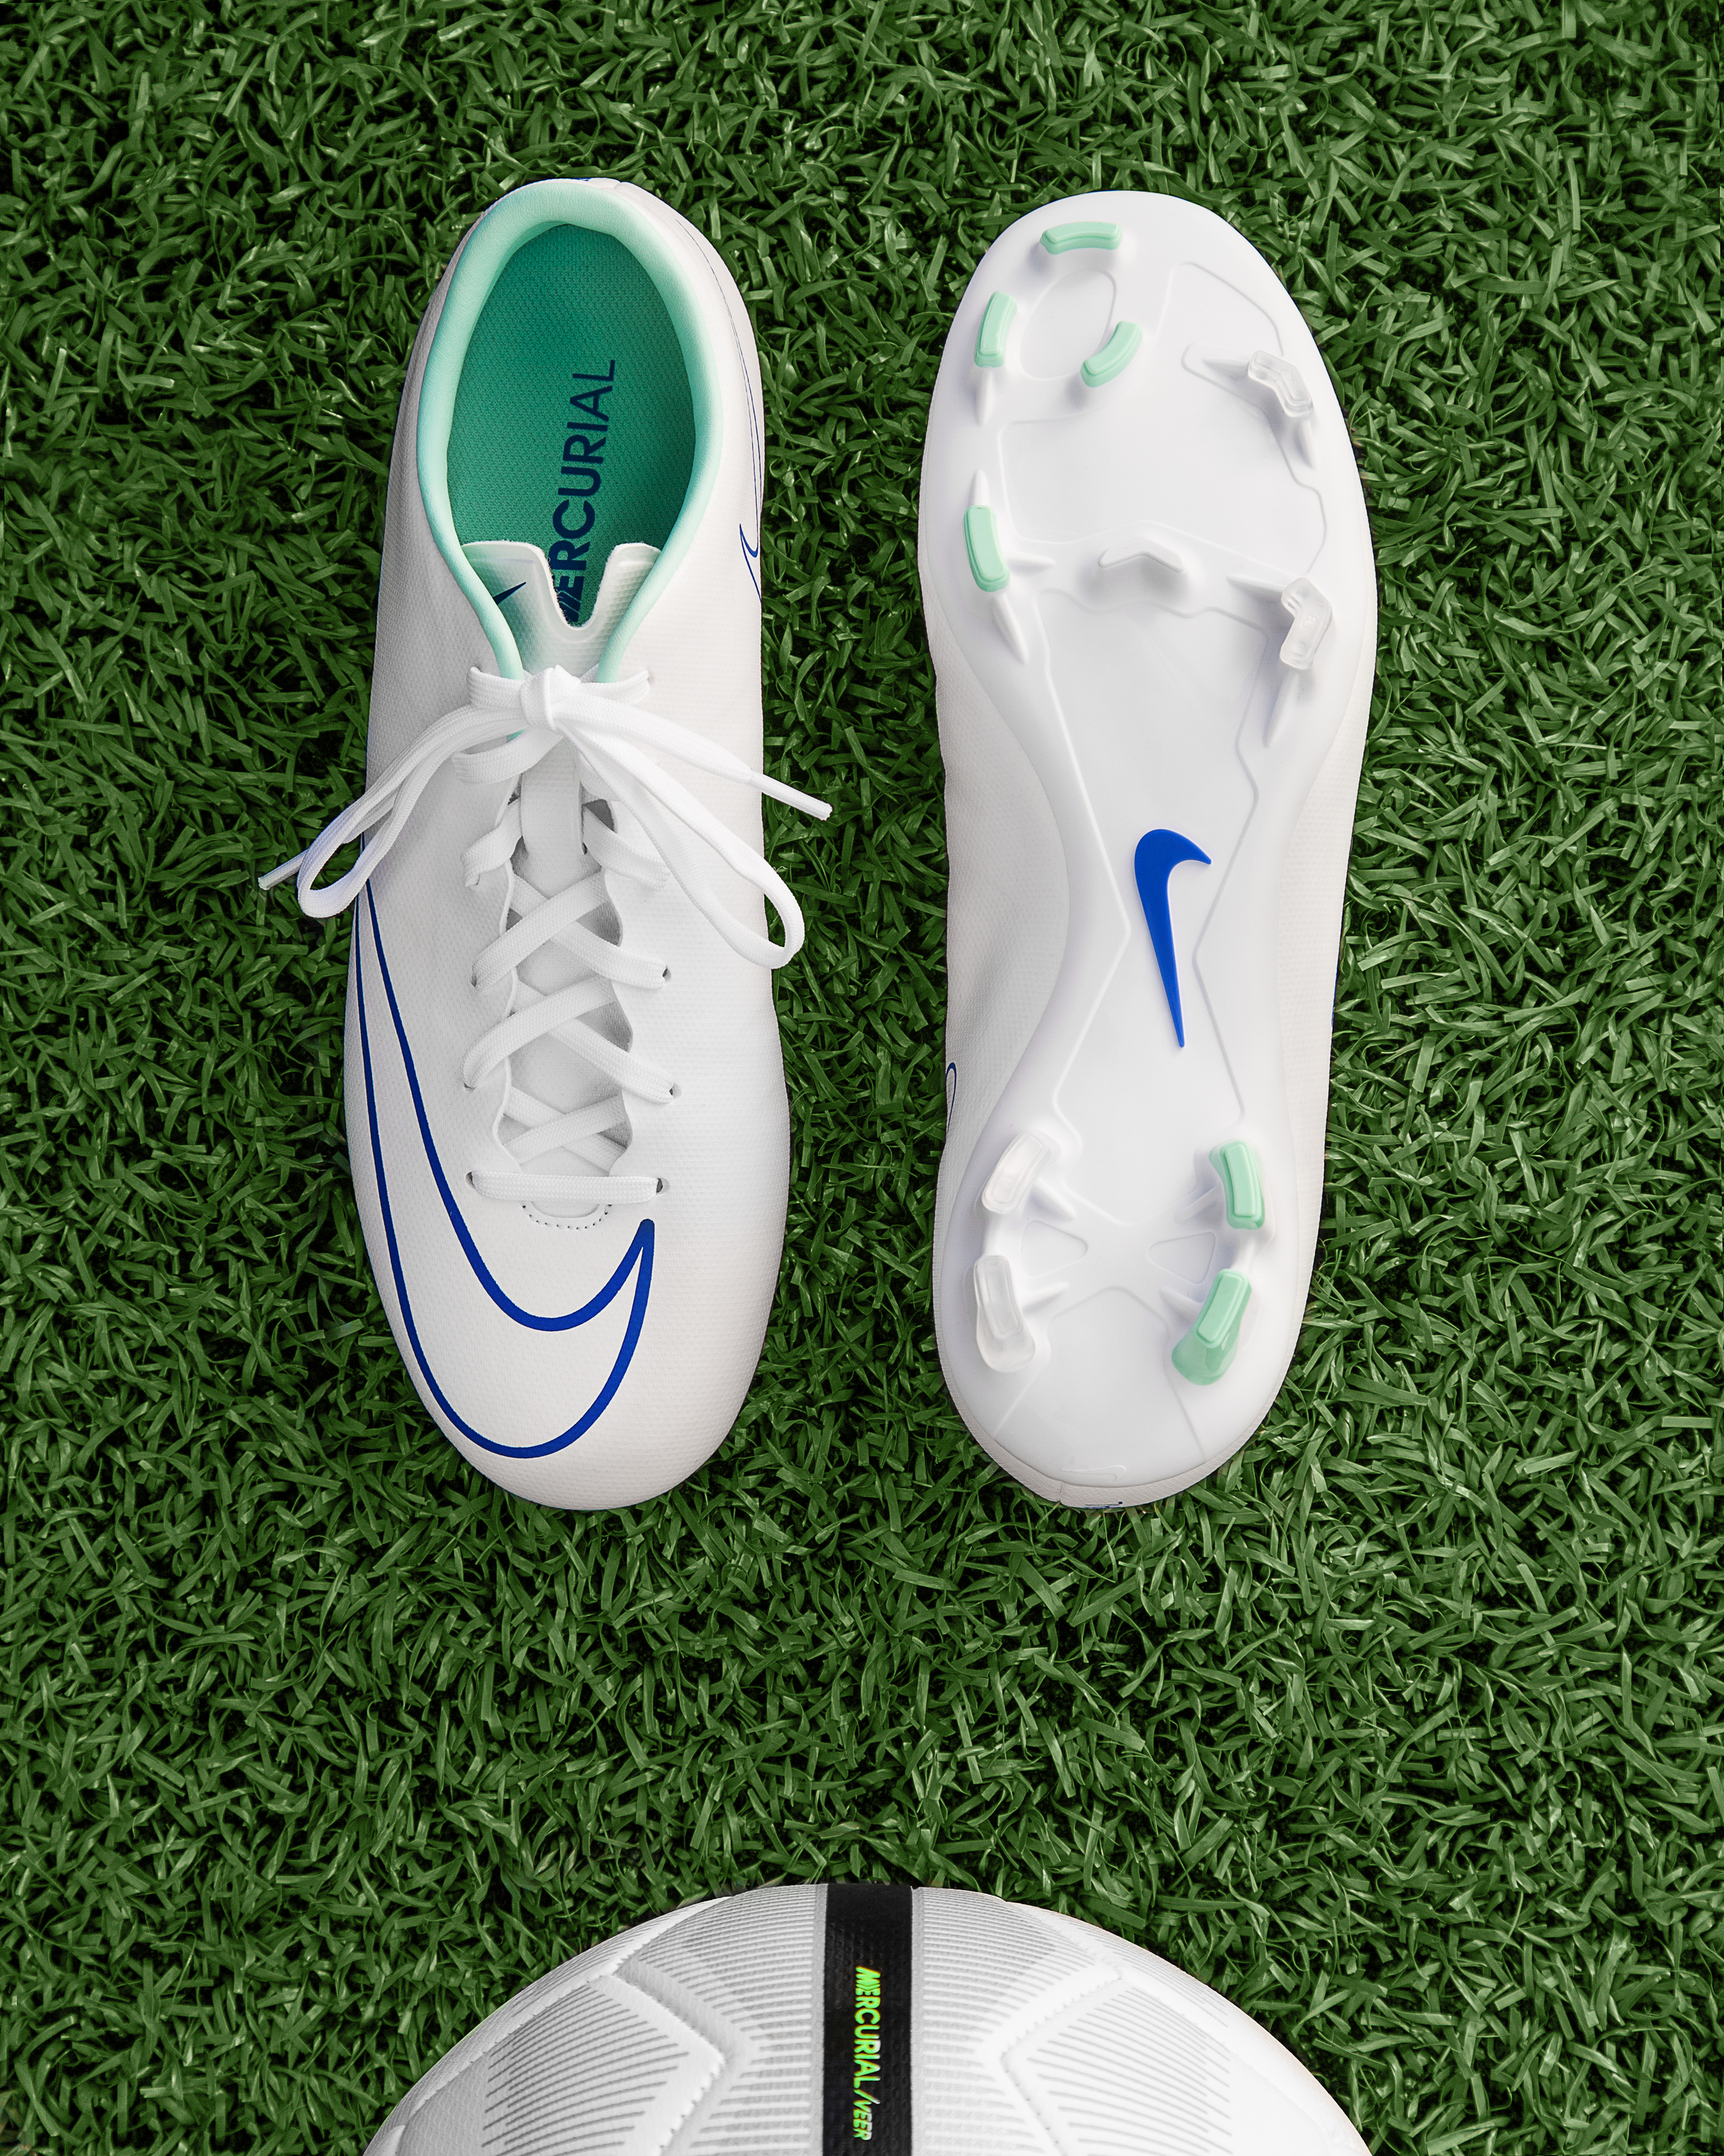 Nike+cleats+above+large+spencer+wallace+photo+product+shoe+soccer.jpg